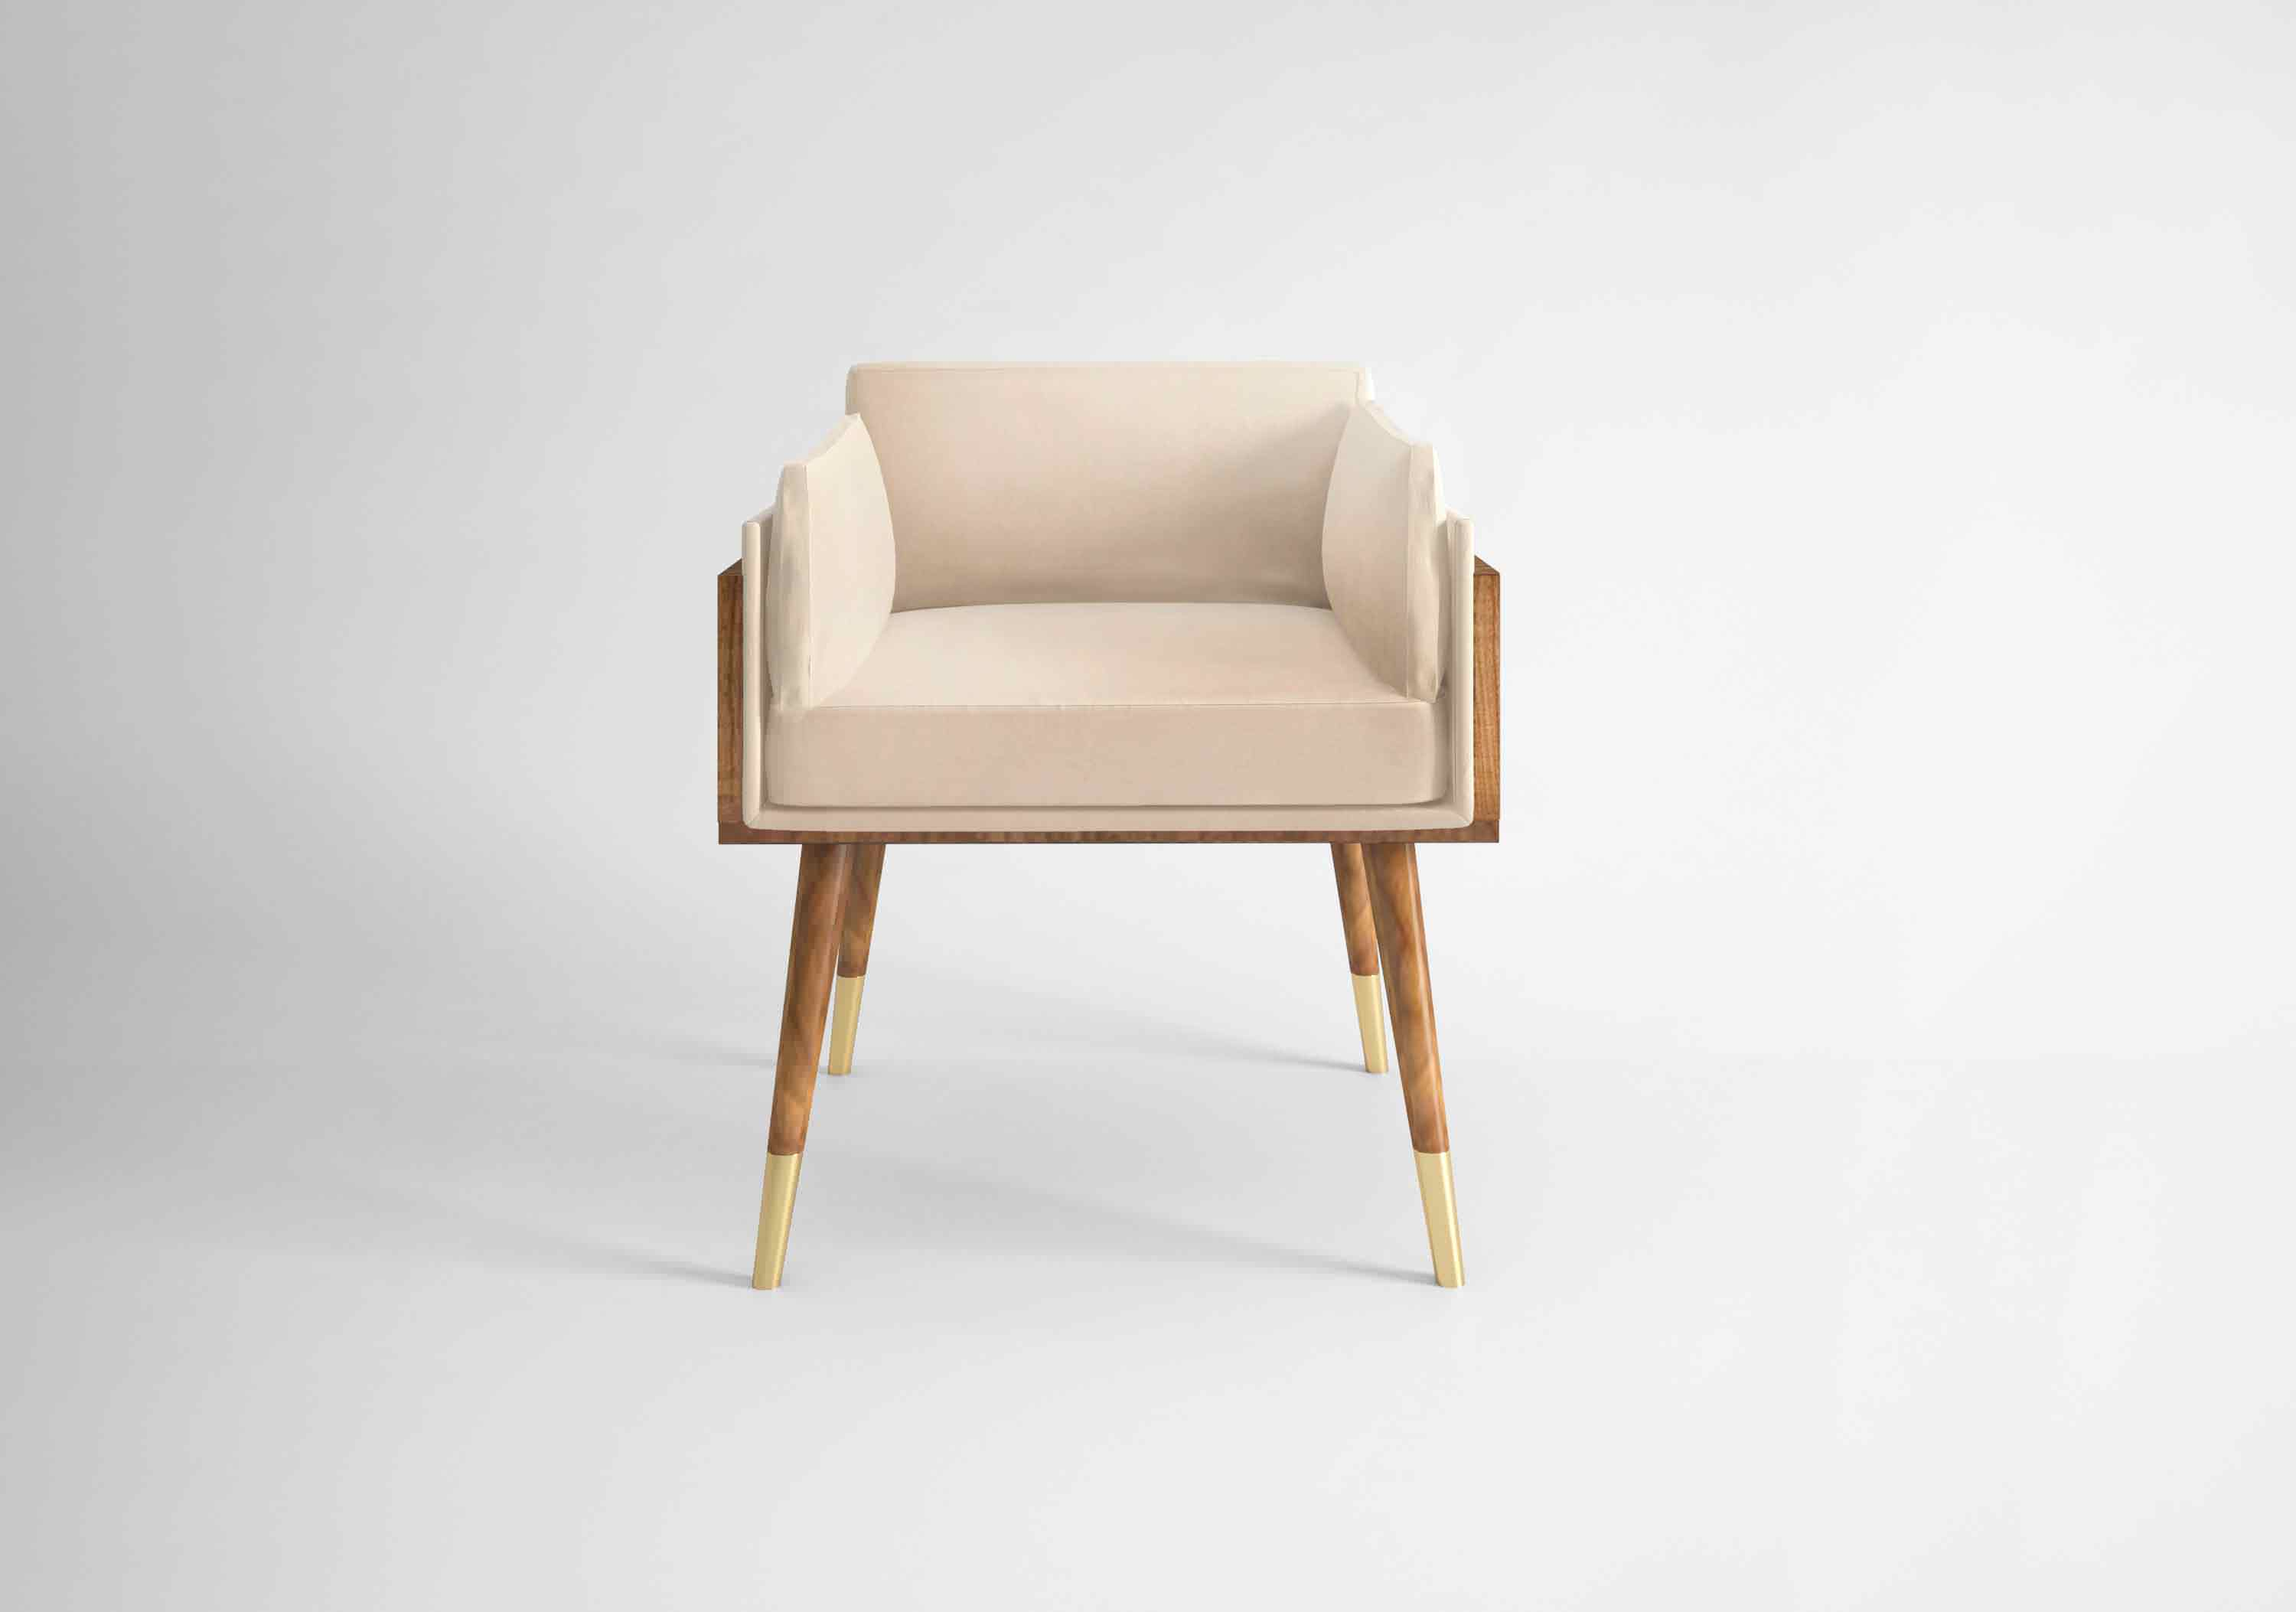 Nakita is a mid-century modern dining chair that looks simply stunning whith its soft lines. Upholstered in Cream Cotton Velvet combined with a structure and legs in Figured (...)